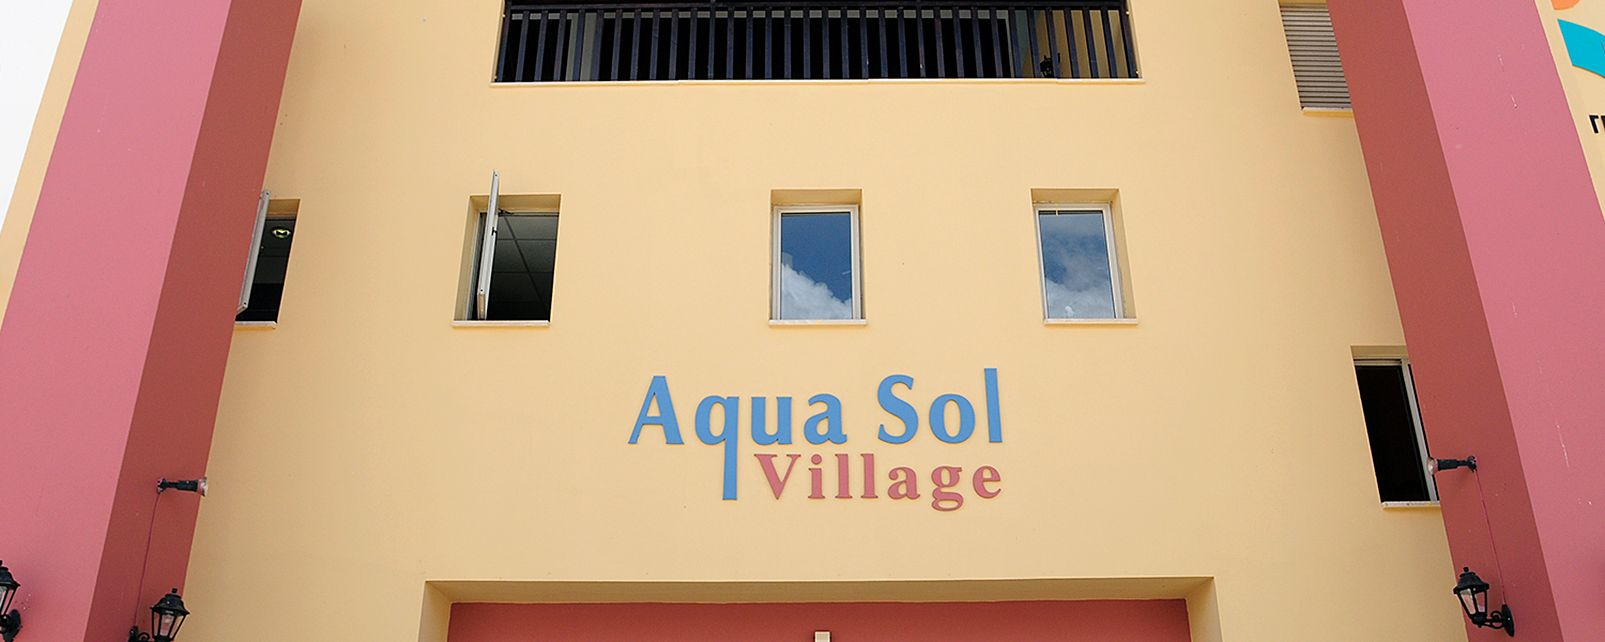 Hôtel Aqua Sol Holiday Village